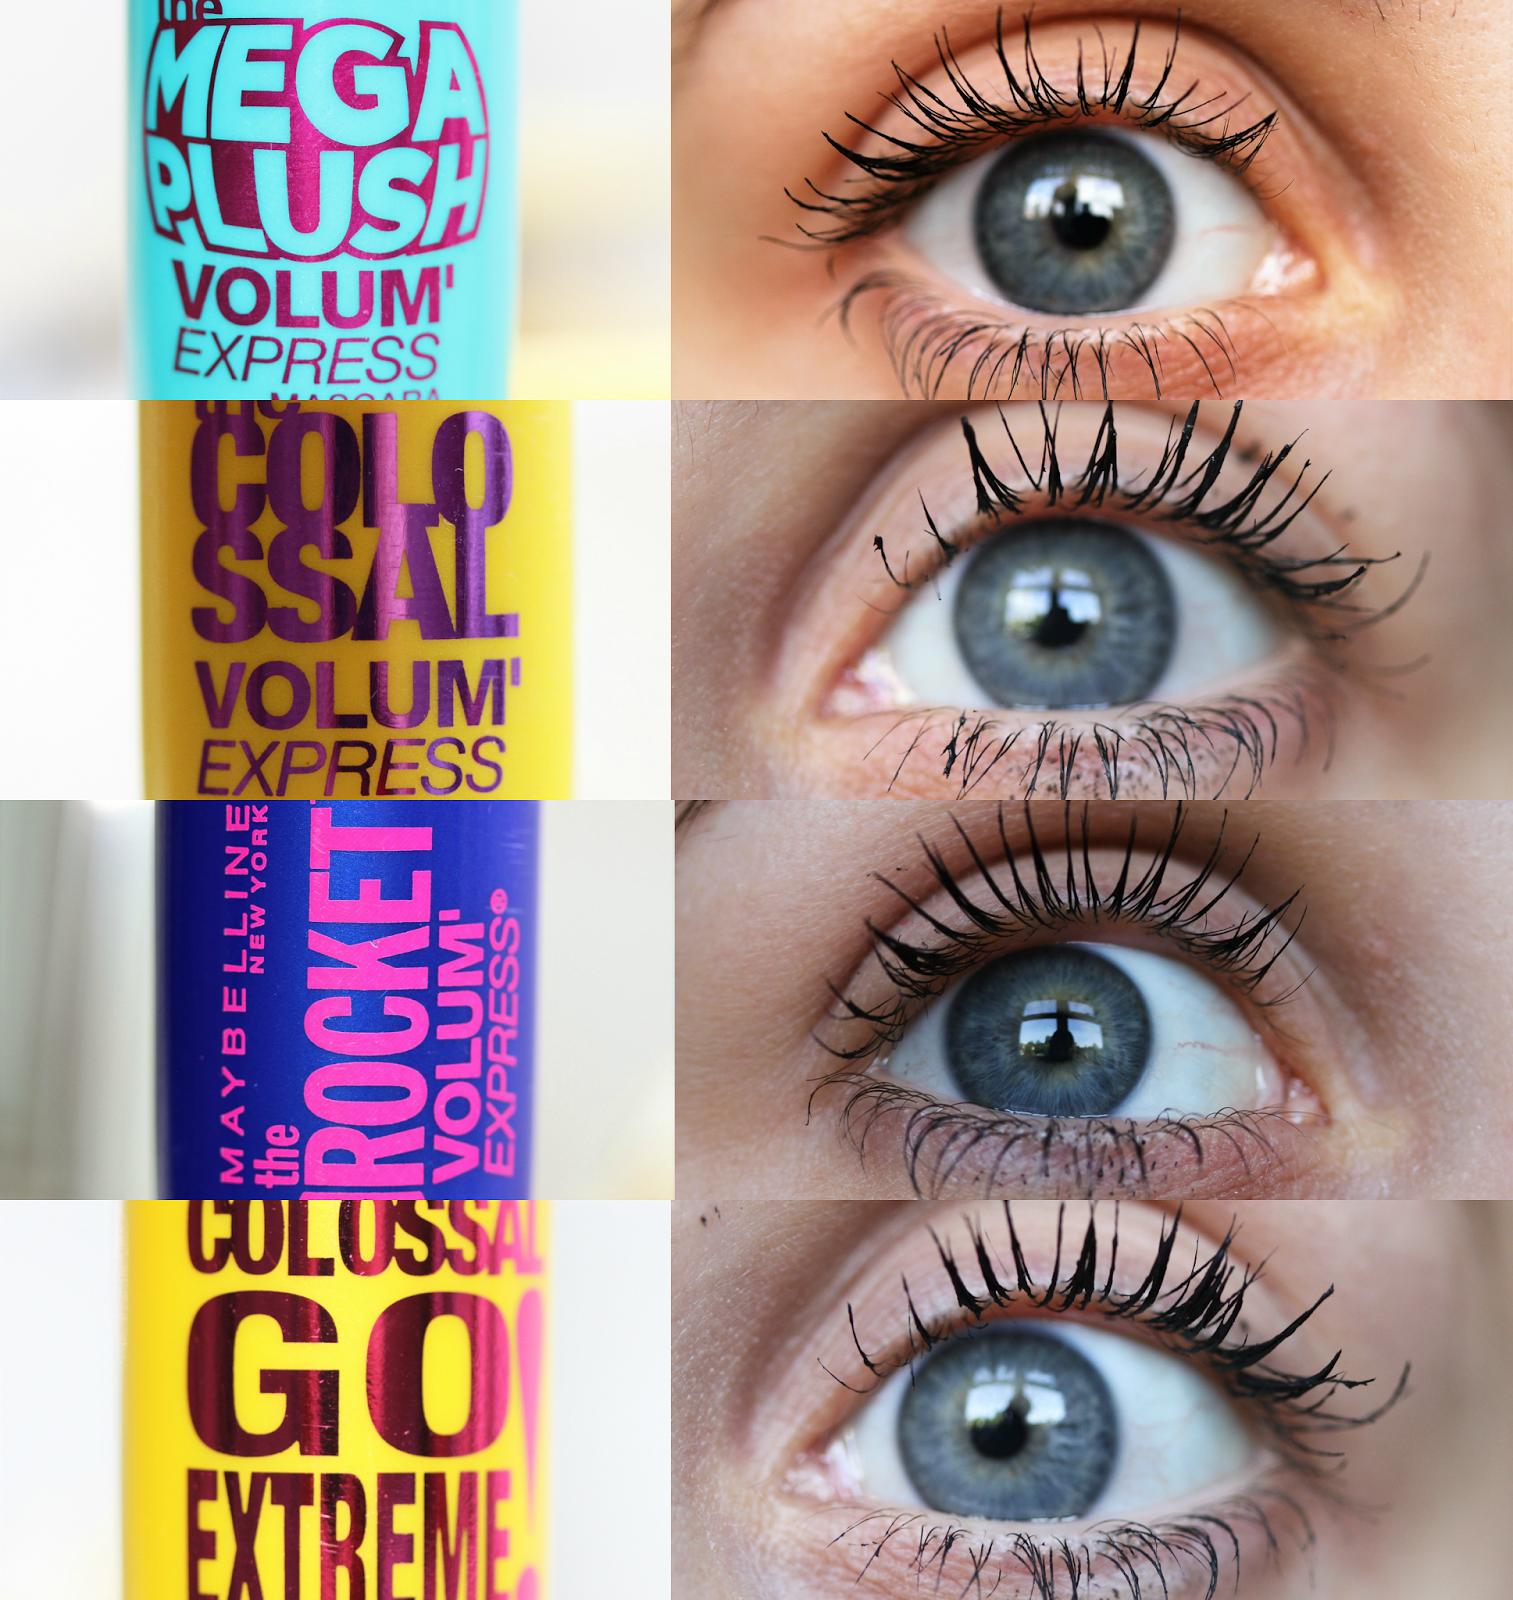 7cb43996db3 Battle of the Maybelline Mascaras (Lola and Behold) | Makeup ...